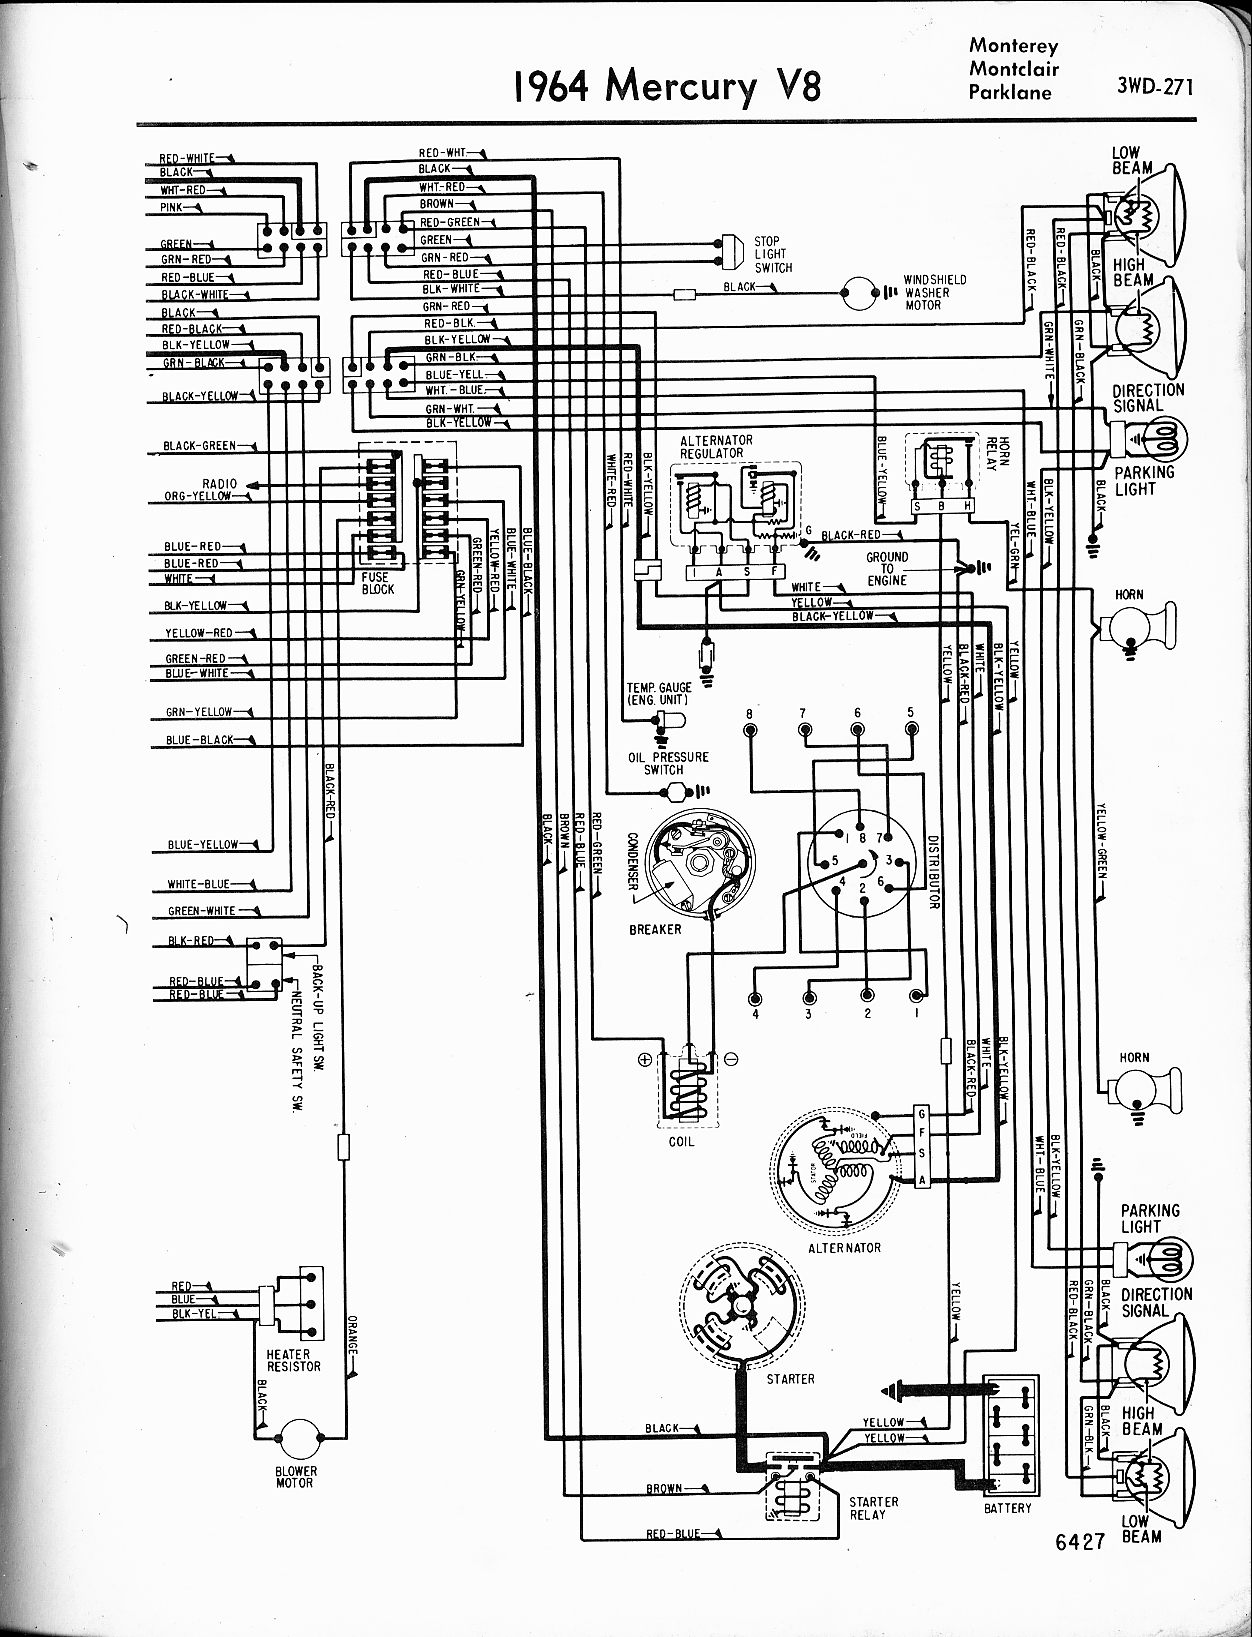 MWire5765 271 1964 thunderbird wiring diagram 1964 thunderbird stereo wiring Mercury Outboard Wiring Schematic Diagram at honlapkeszites.co